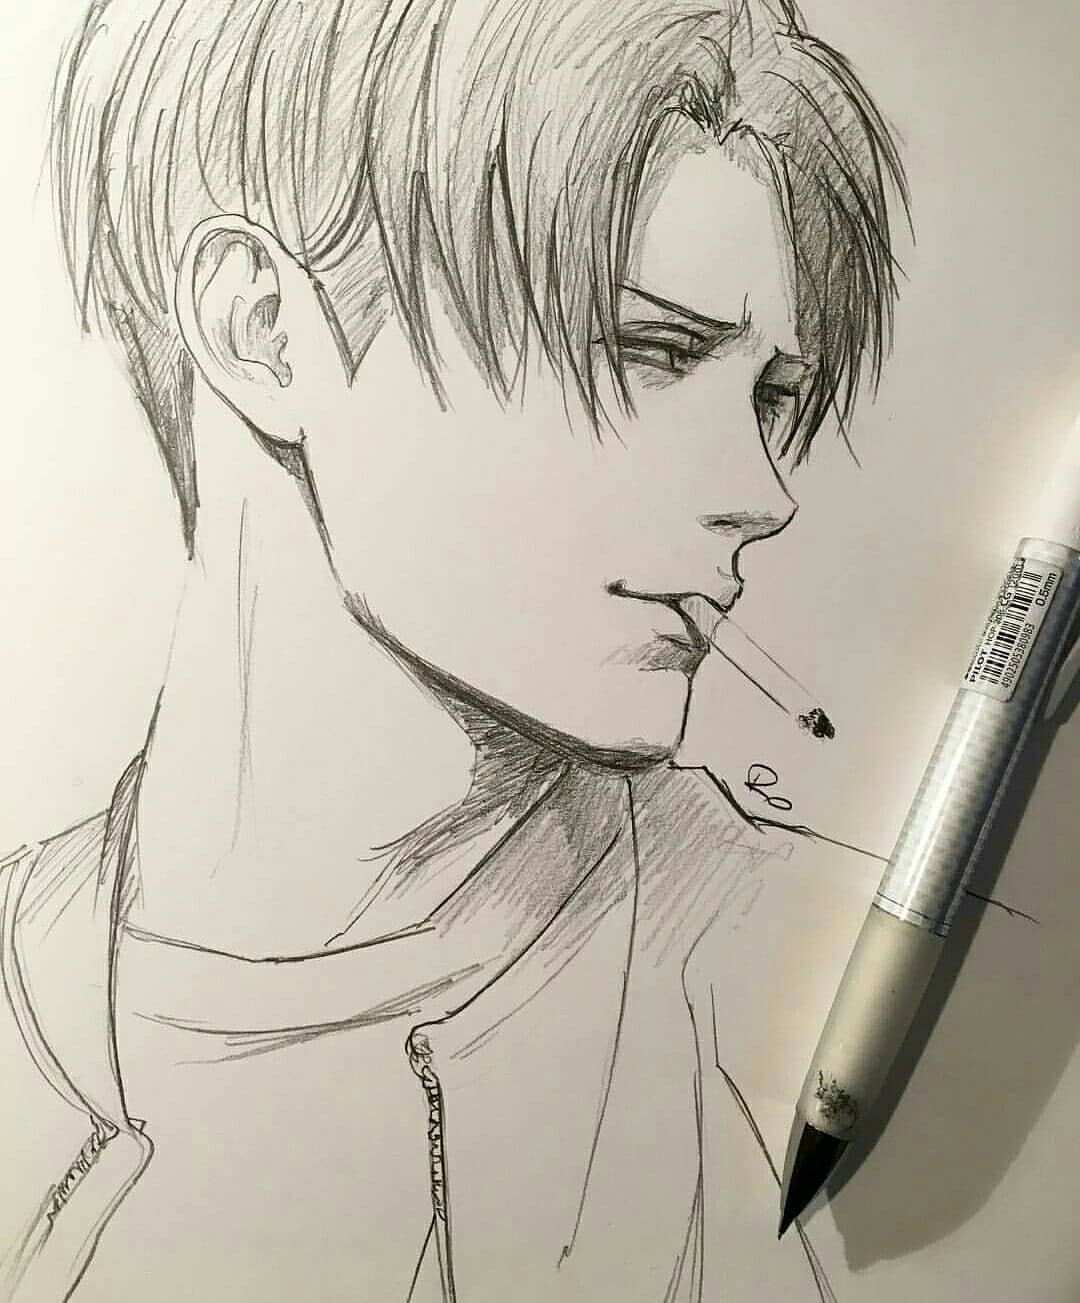 Pin by Munima Mahmuda on levi Ackerman Attack on Titan